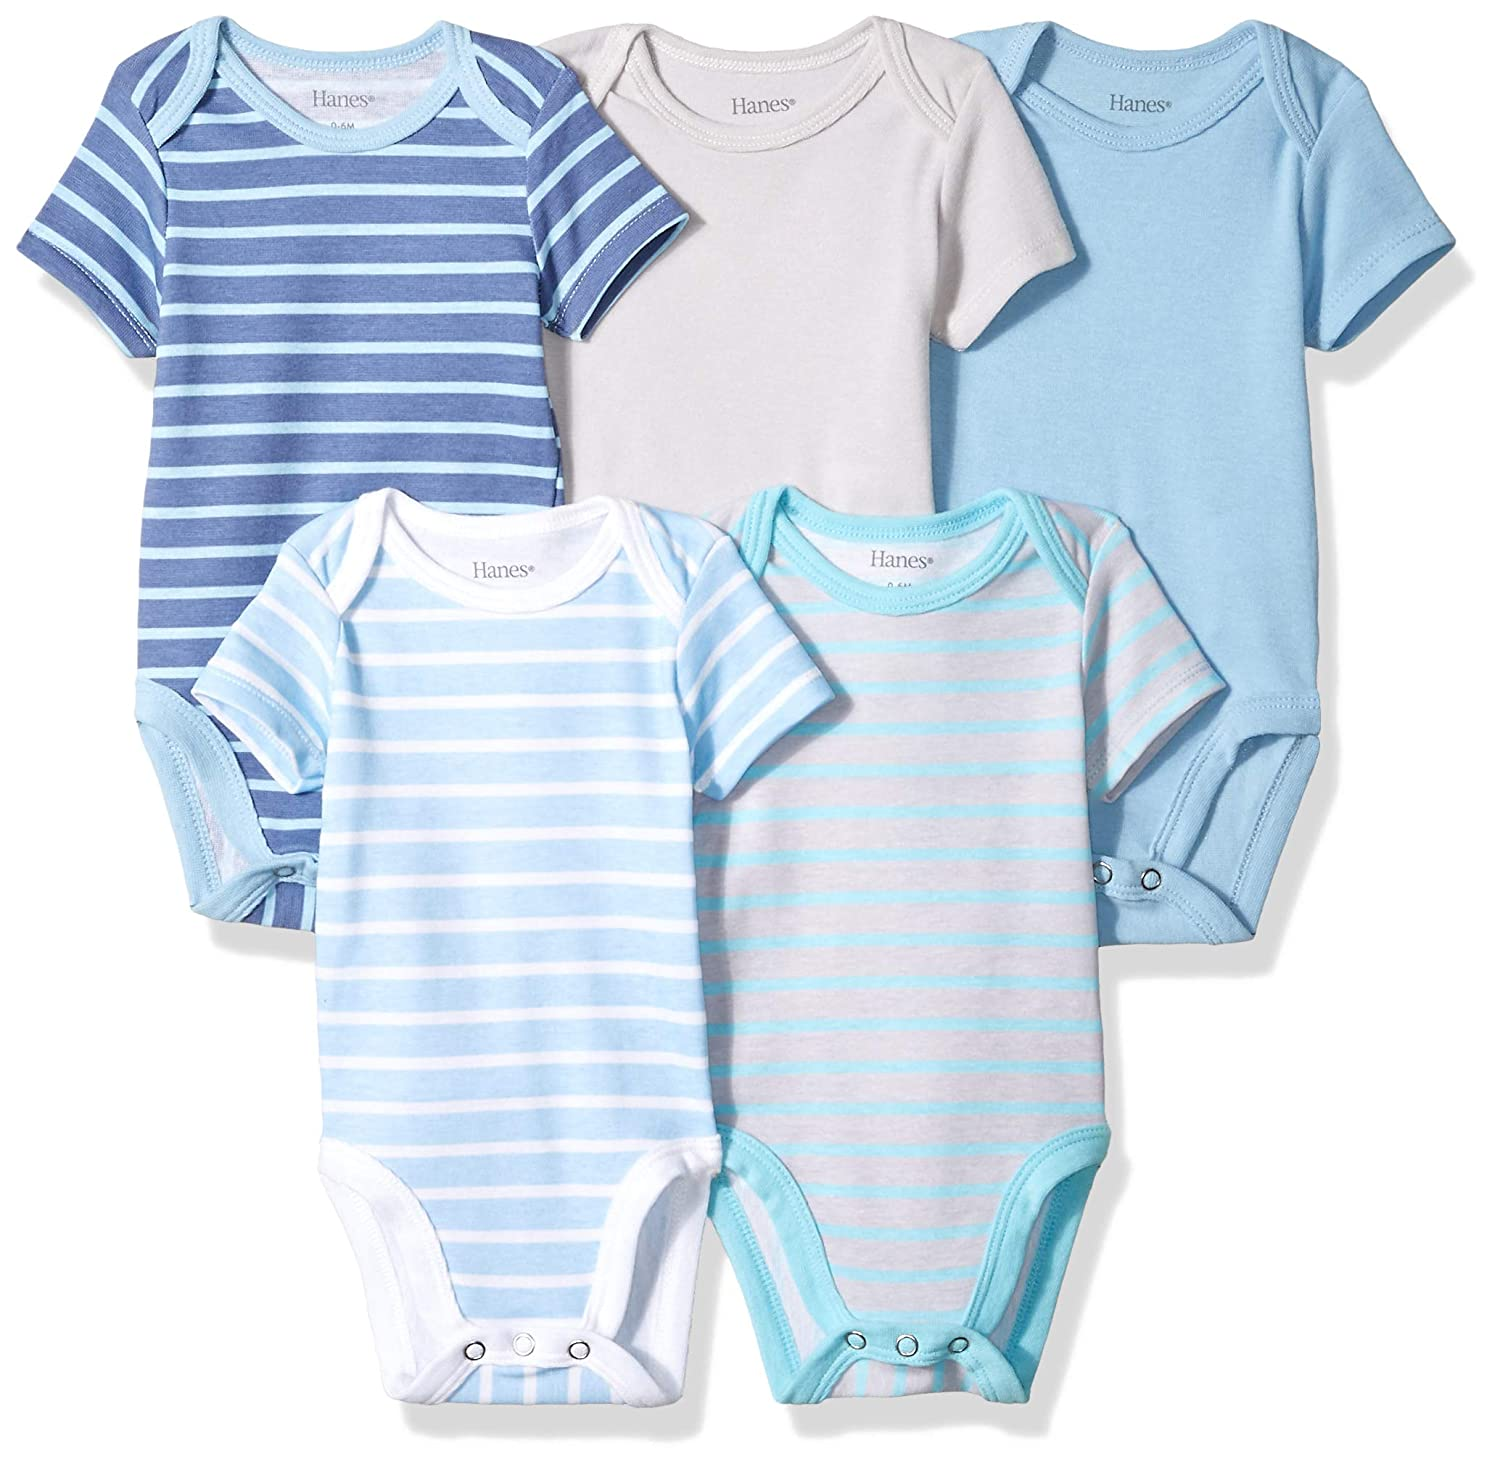 9246fd8d4 Amazon.com: Hanes Ultimate Baby Flexy 5 Pack Short Sleeve Bodysuits:  Clothing